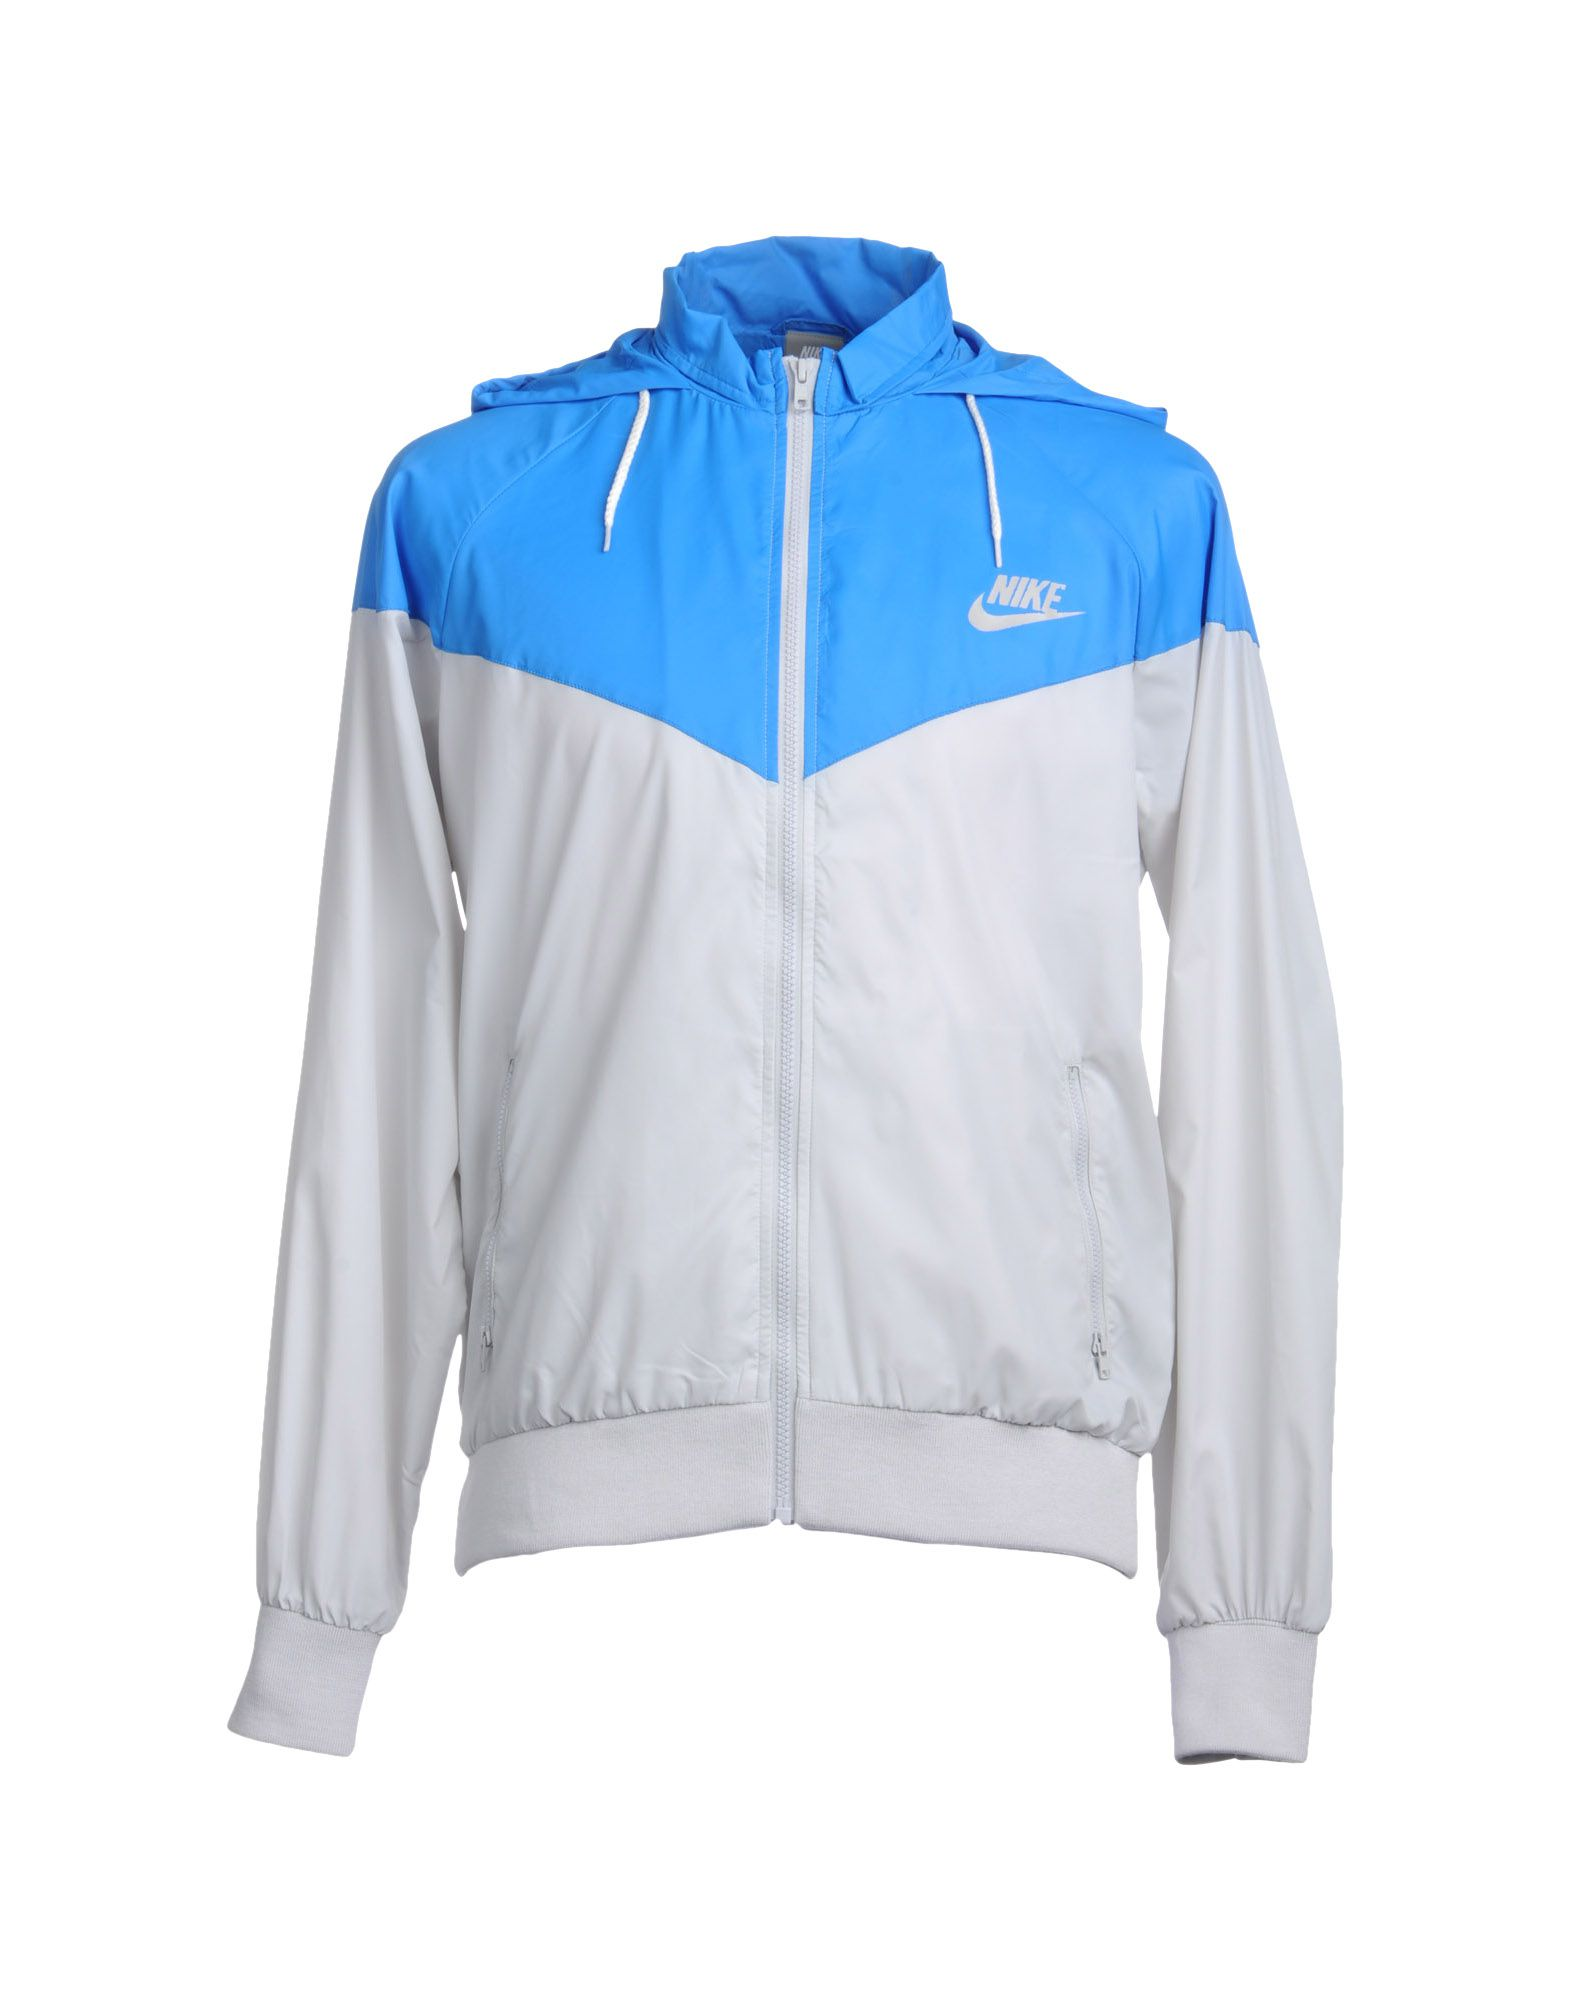 Nike Jacket In Blue For Men Lyst